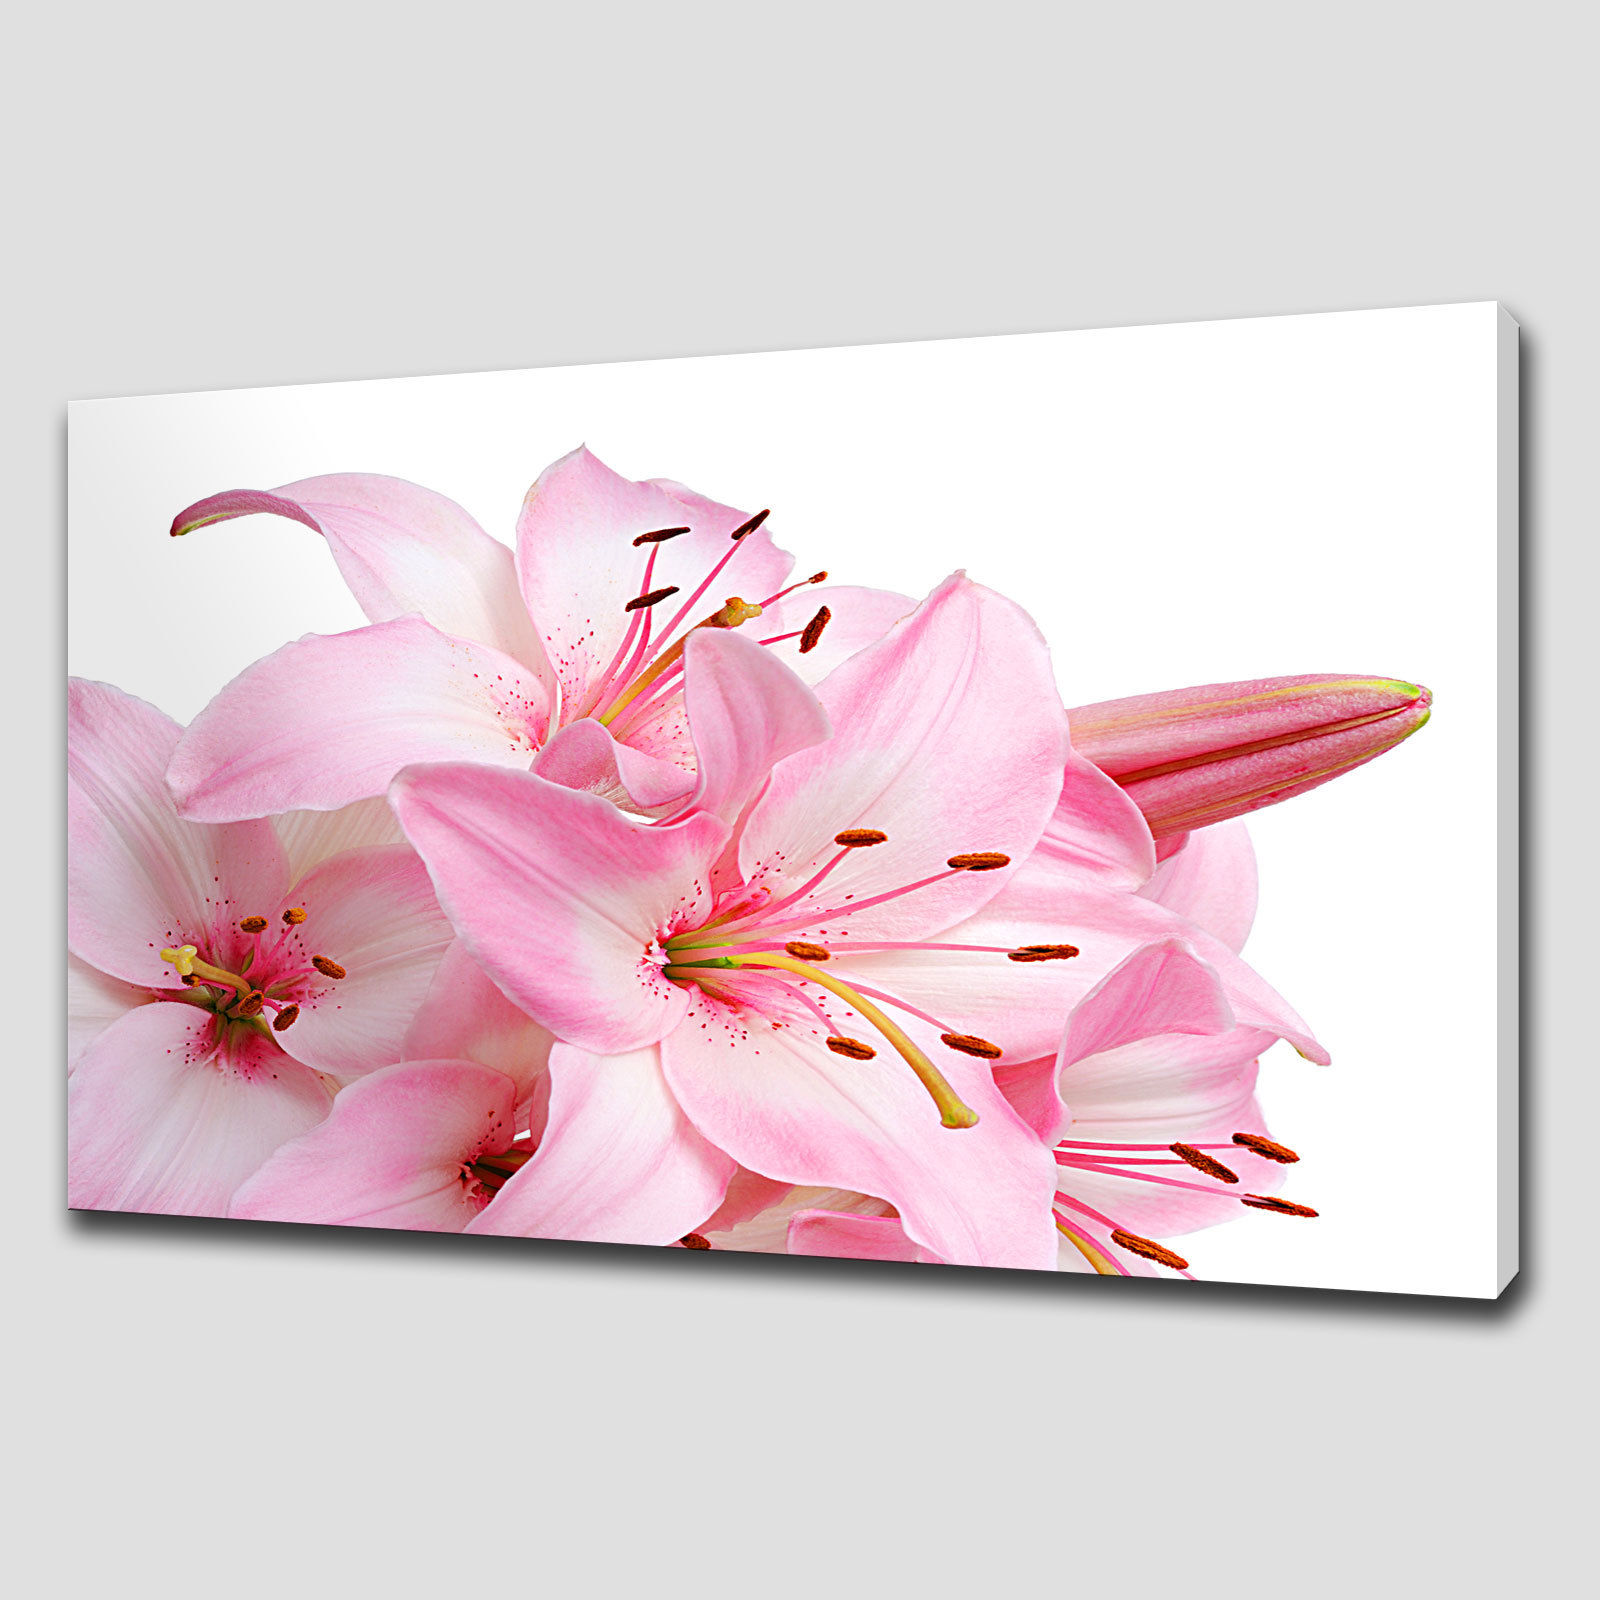 PINK LILY FLORAL LARGE CANVAS WALL ART - Canvas Print Art